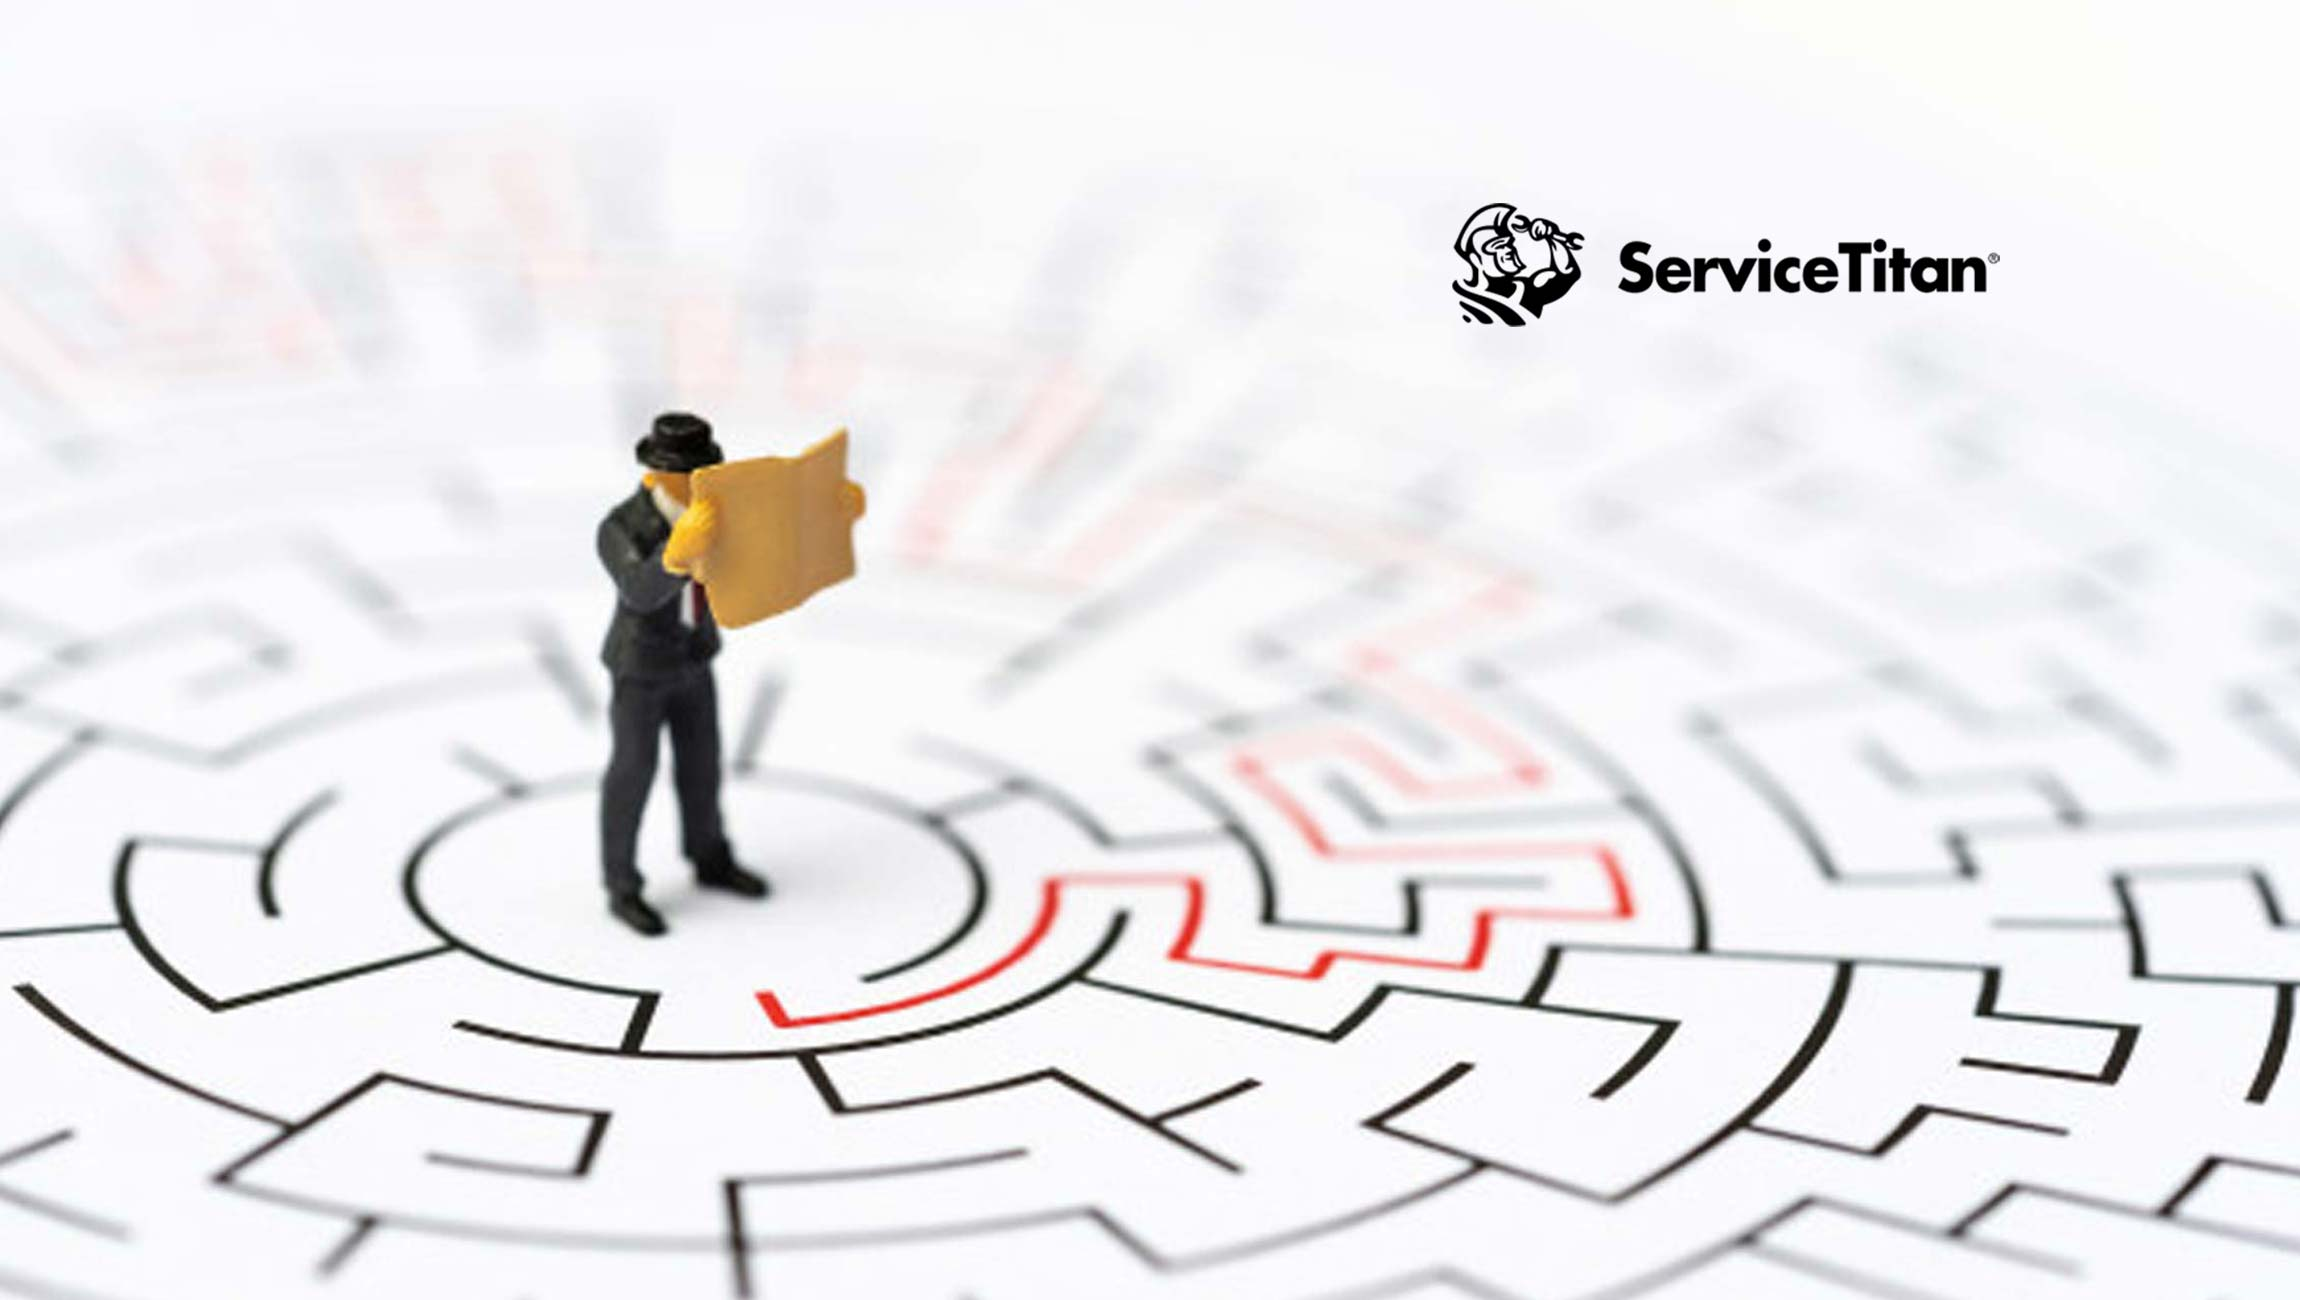 ServiceTitan and R.E. Michel Company Modernize Contractor-Supplier Workflows With Procure-To-Pay Experience